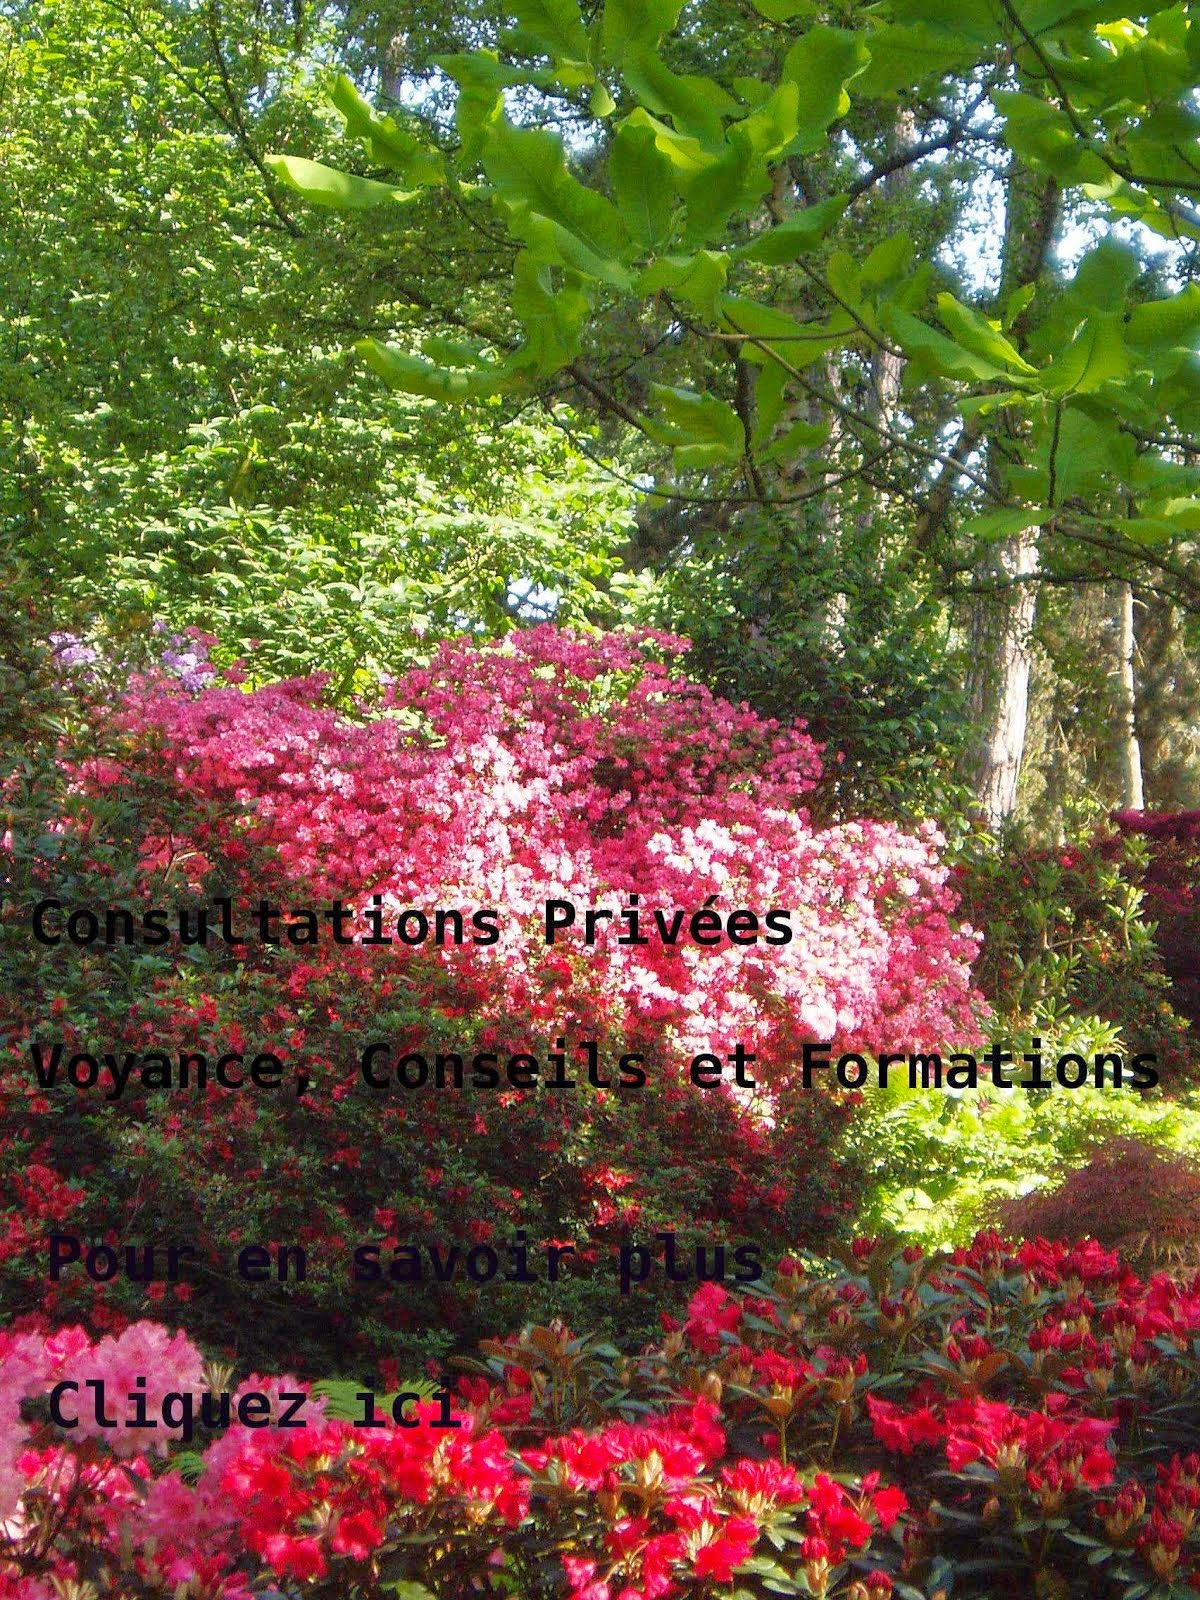 Intuition and Co - Kathy Hanke - Consultations et Formations